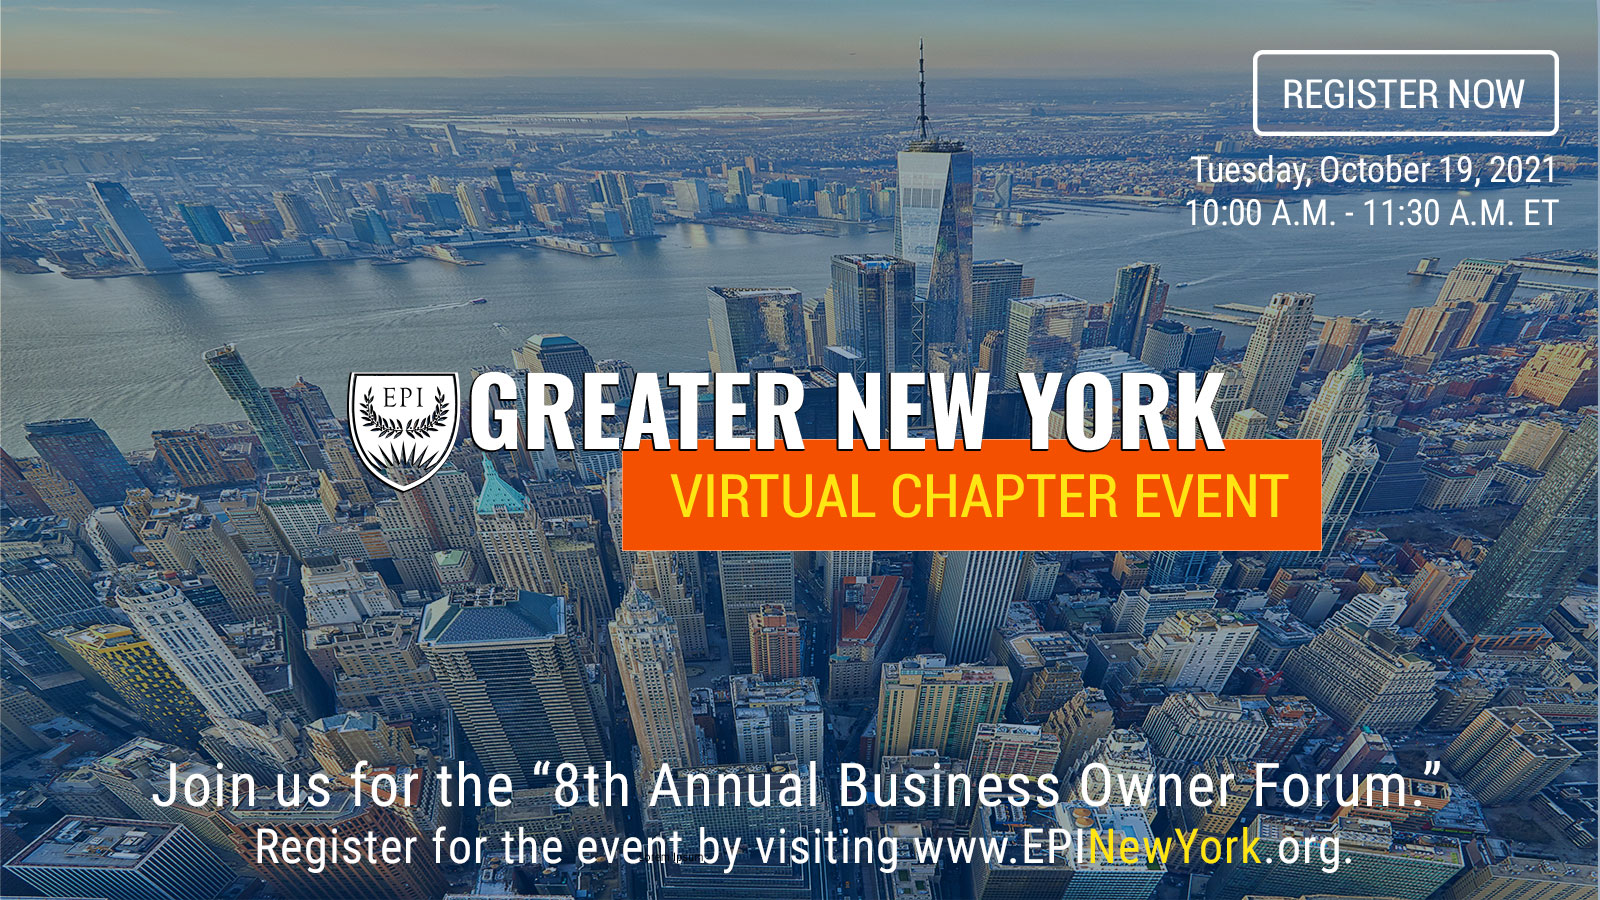 8th Annual Business Owner Forum